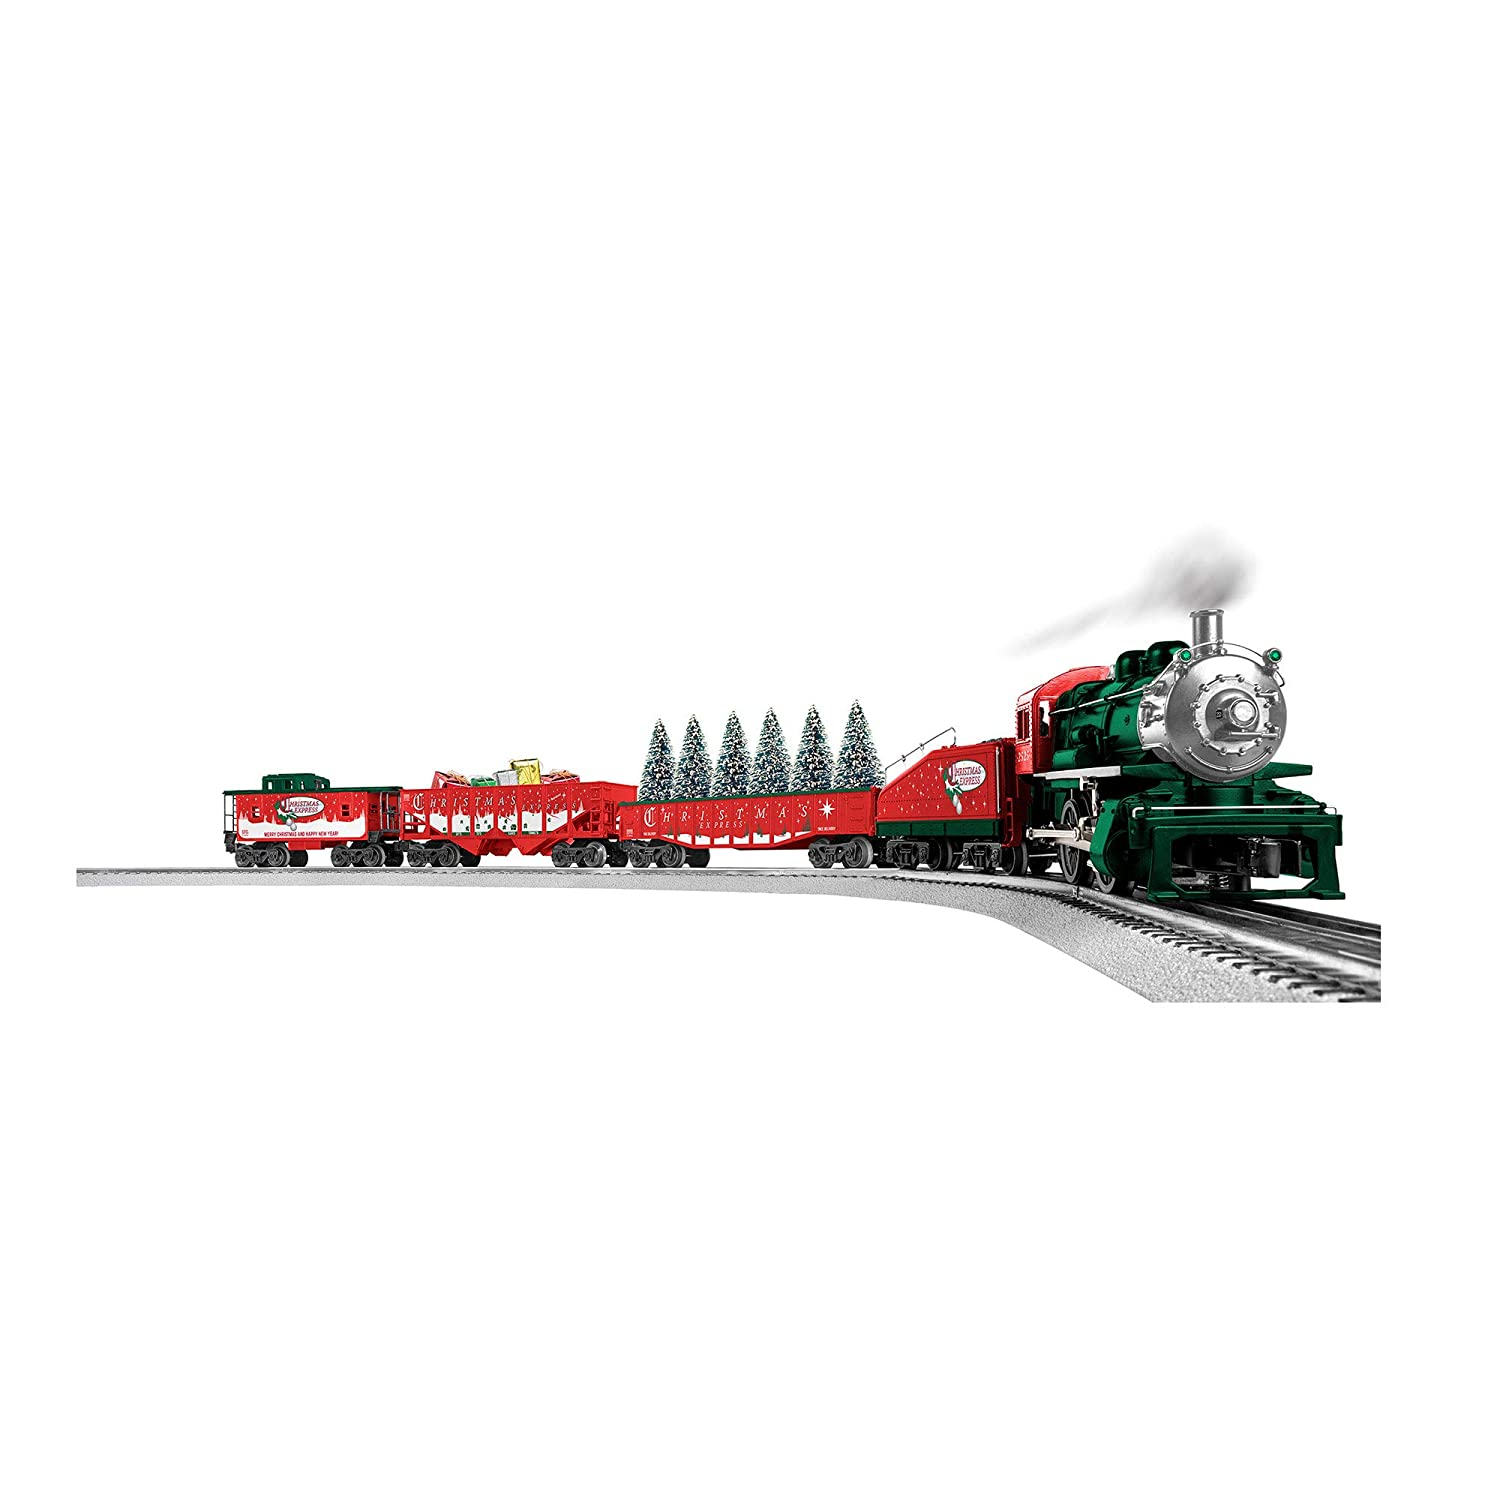 Amazon.com: Lionel The Christmas Express Freight Train Set with ...